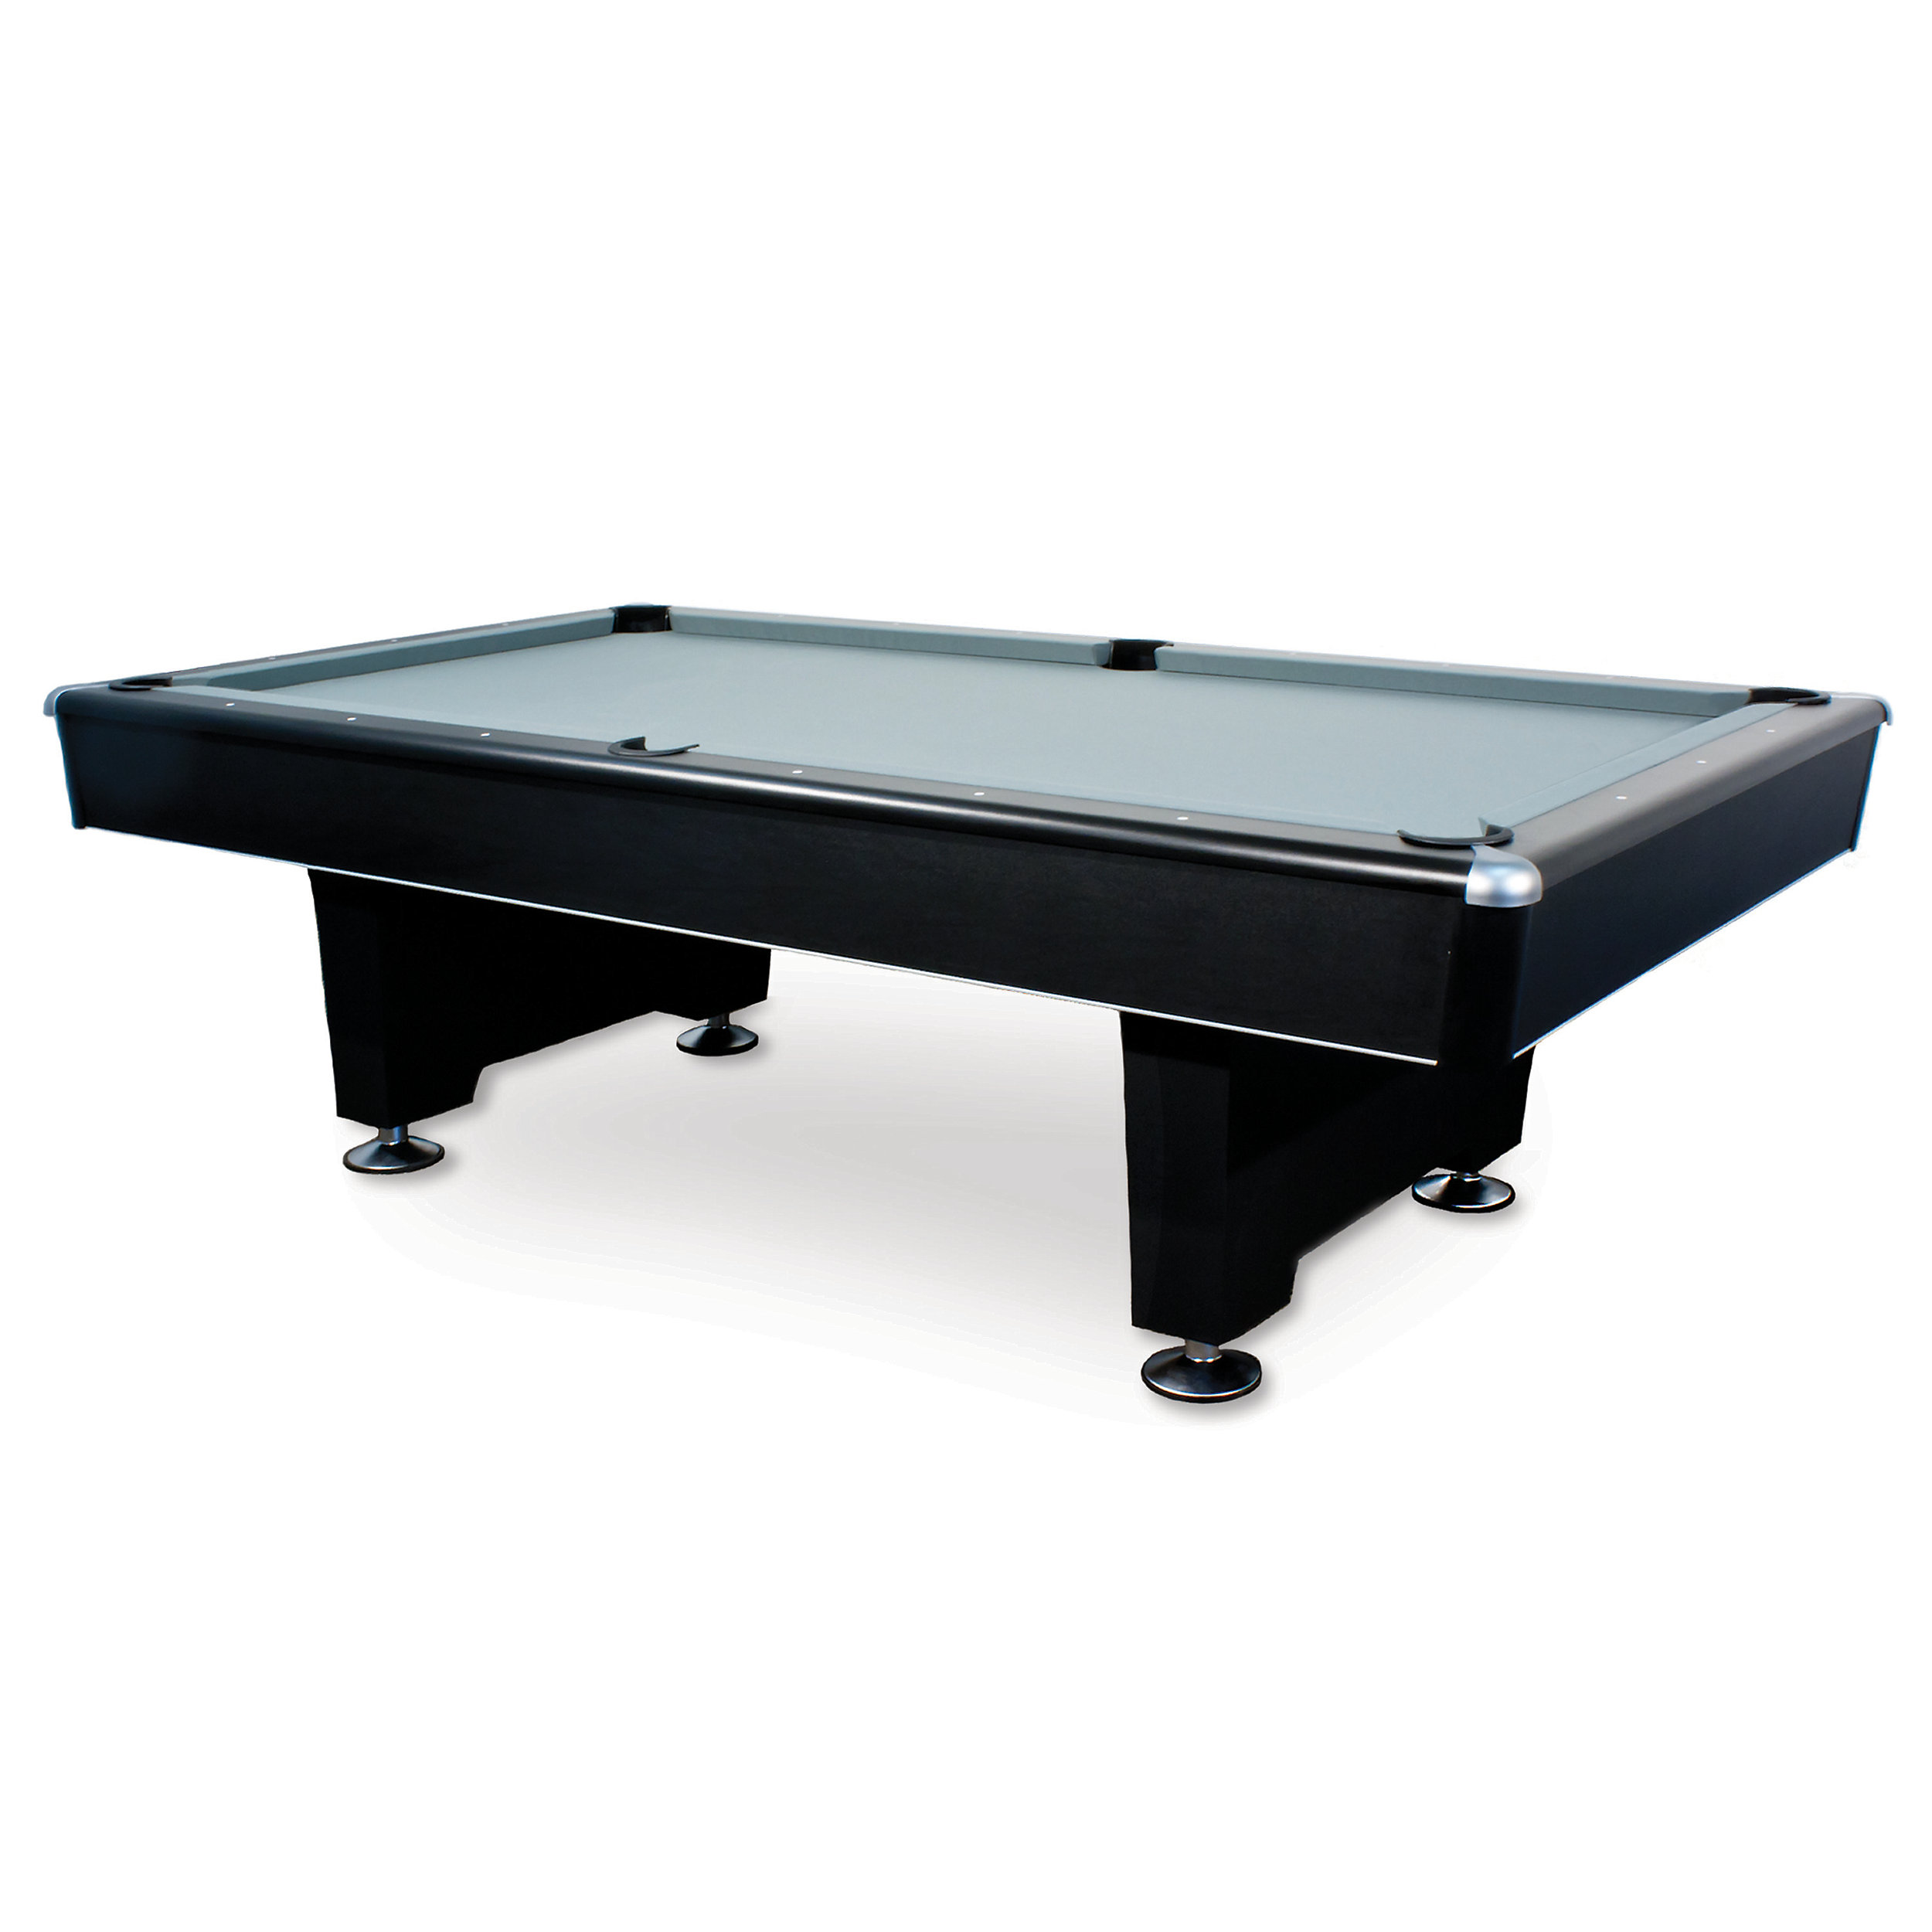 Contemporary Billiard Table Modern Pool Table For Sale - Pool table sizes and prices